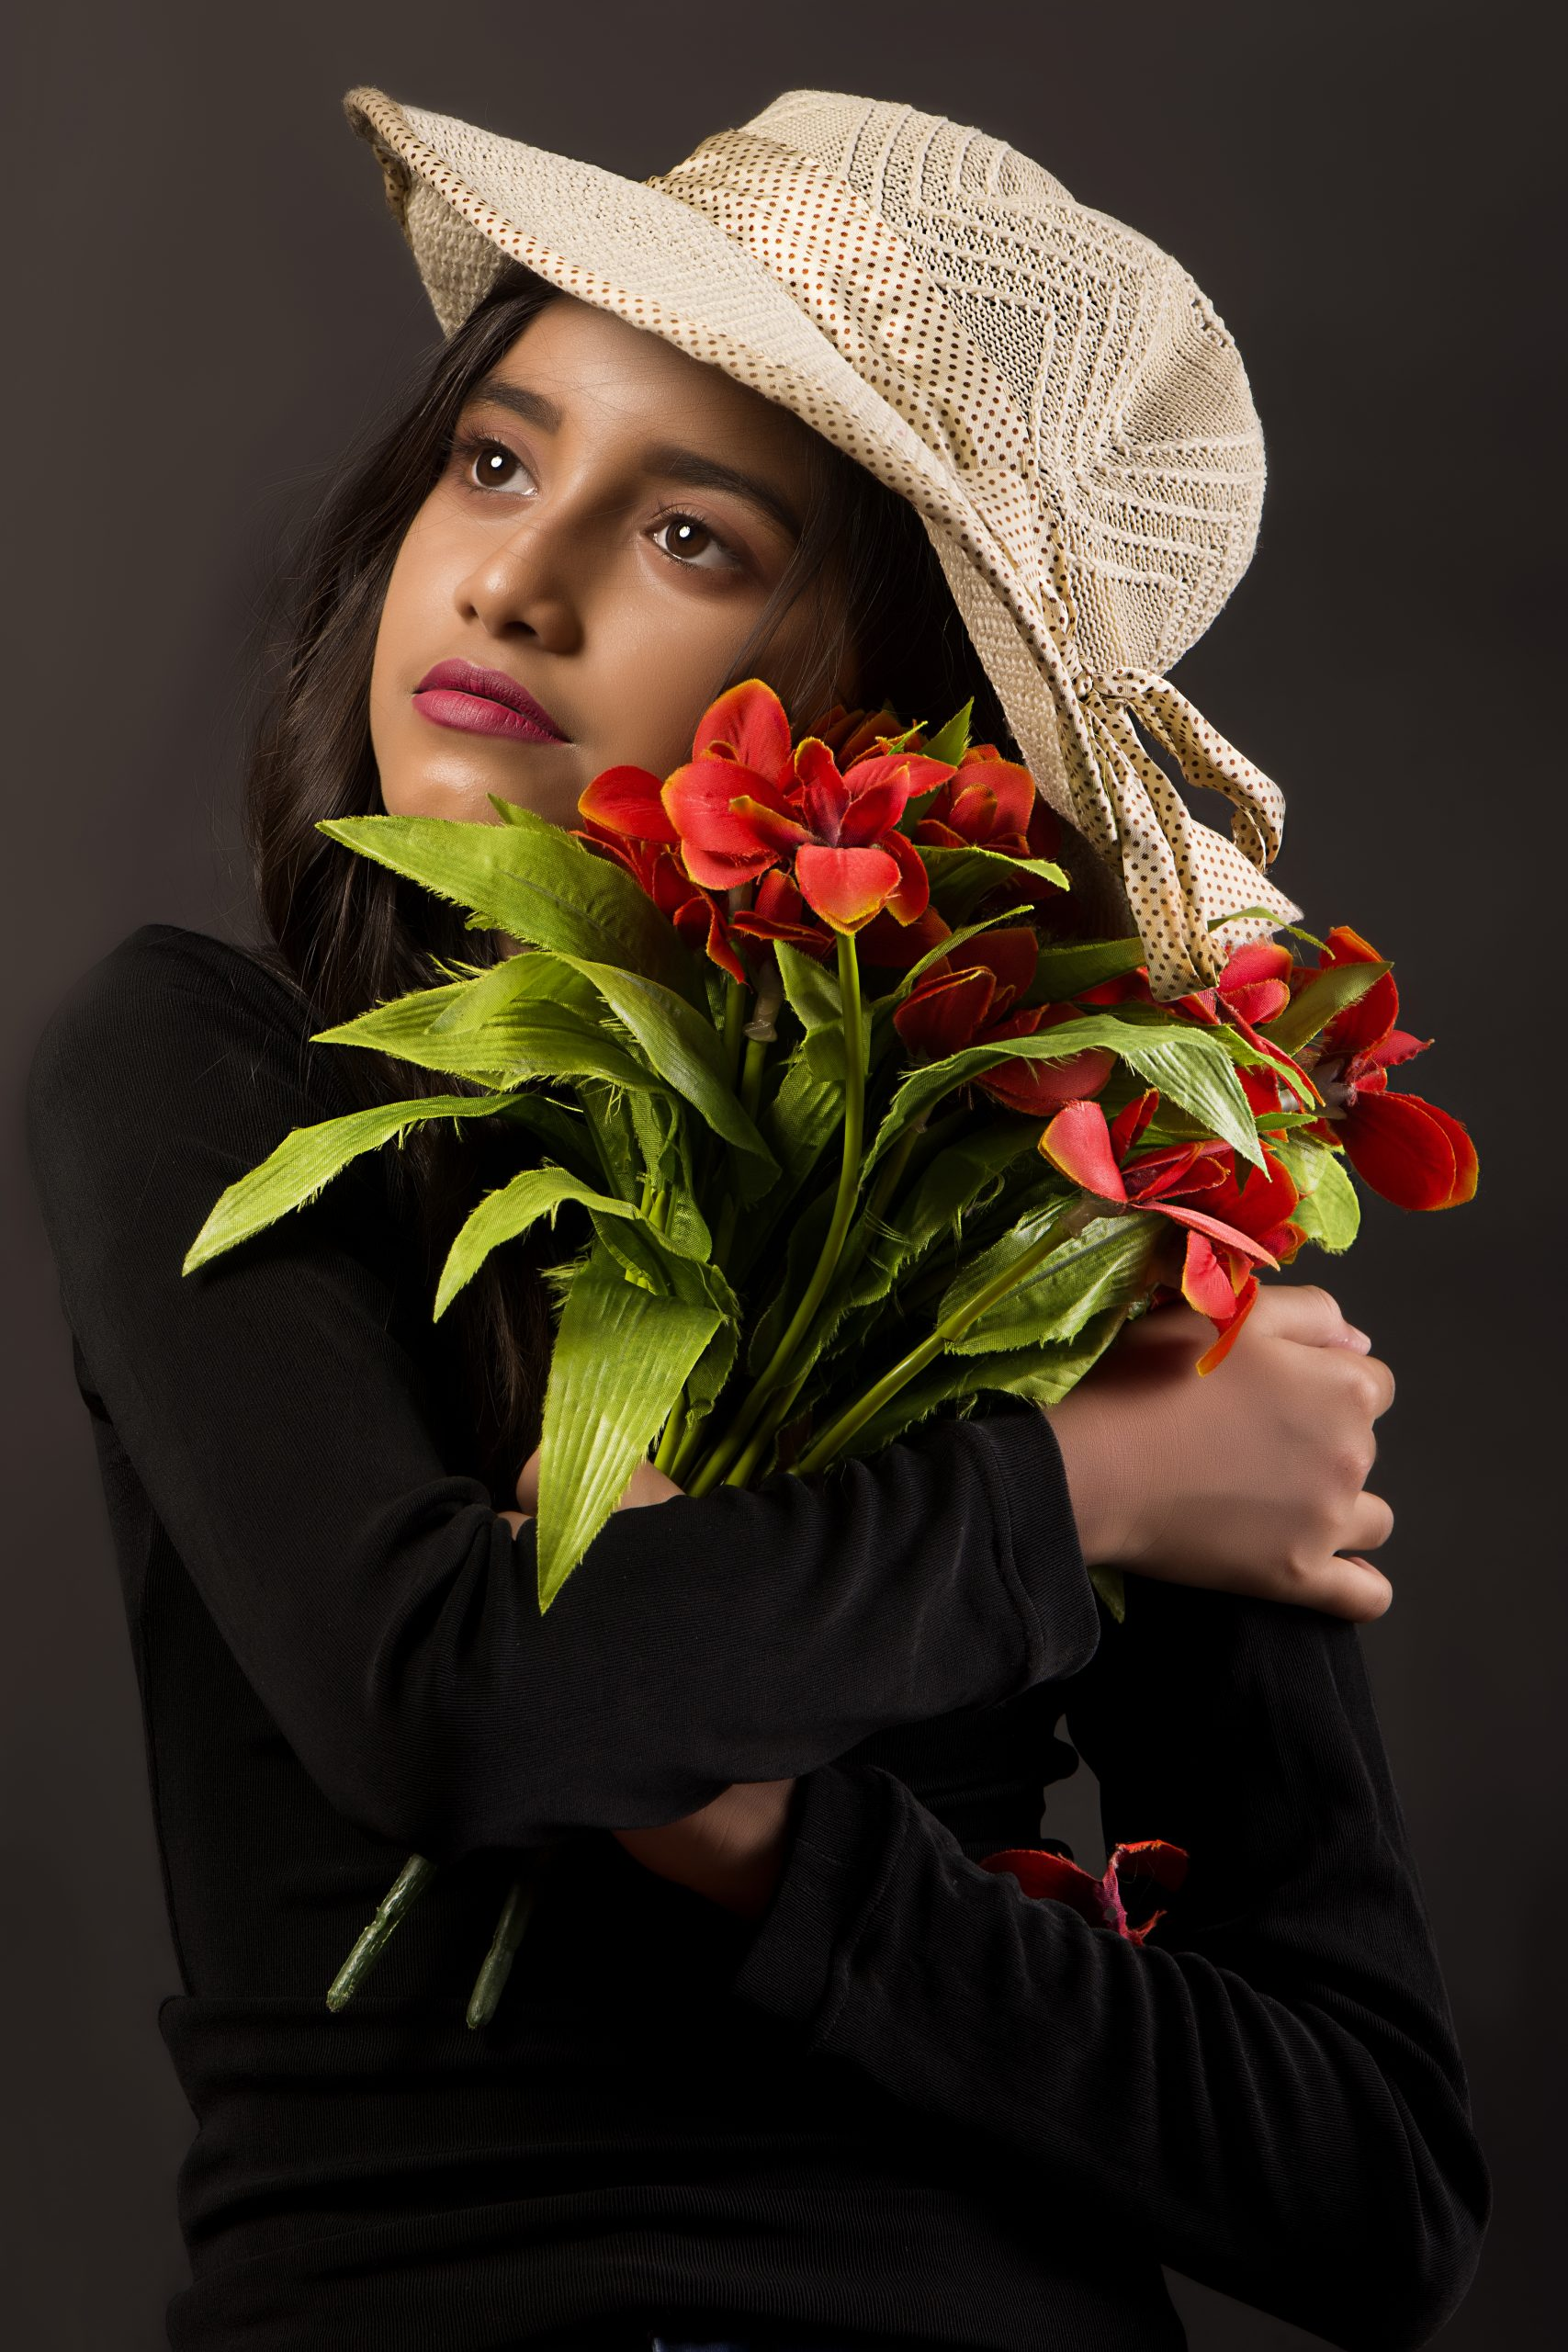 A girl posing for photograph with flowers in her hands.